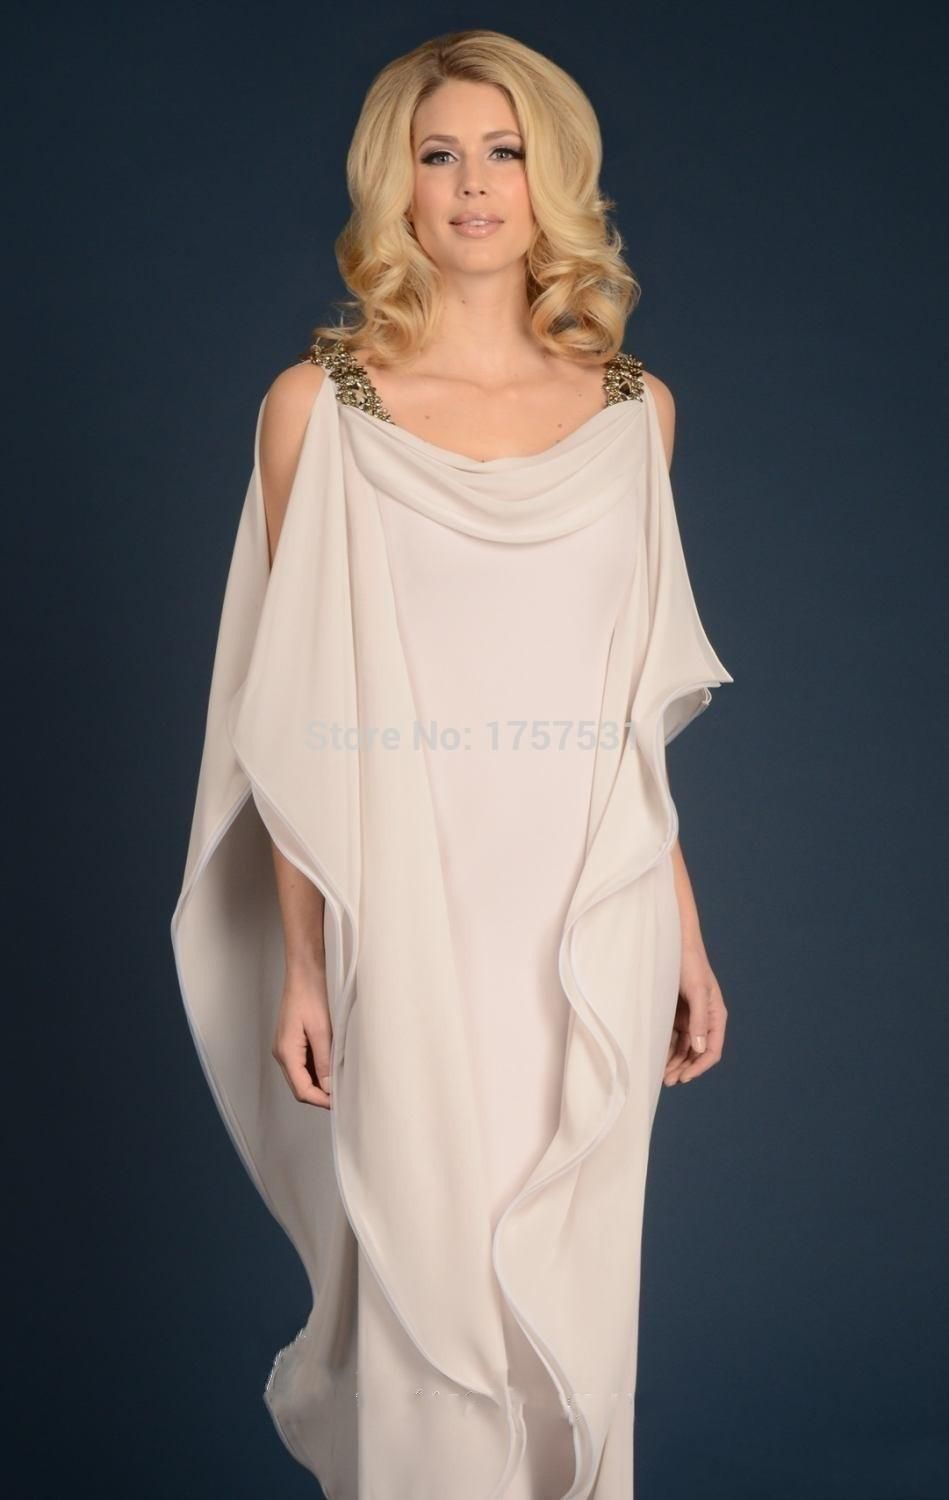 Grecian Dess Chiffon Mothers Dress With Straps Floor Length Long Elegant Women Mother Of The Bride Groom